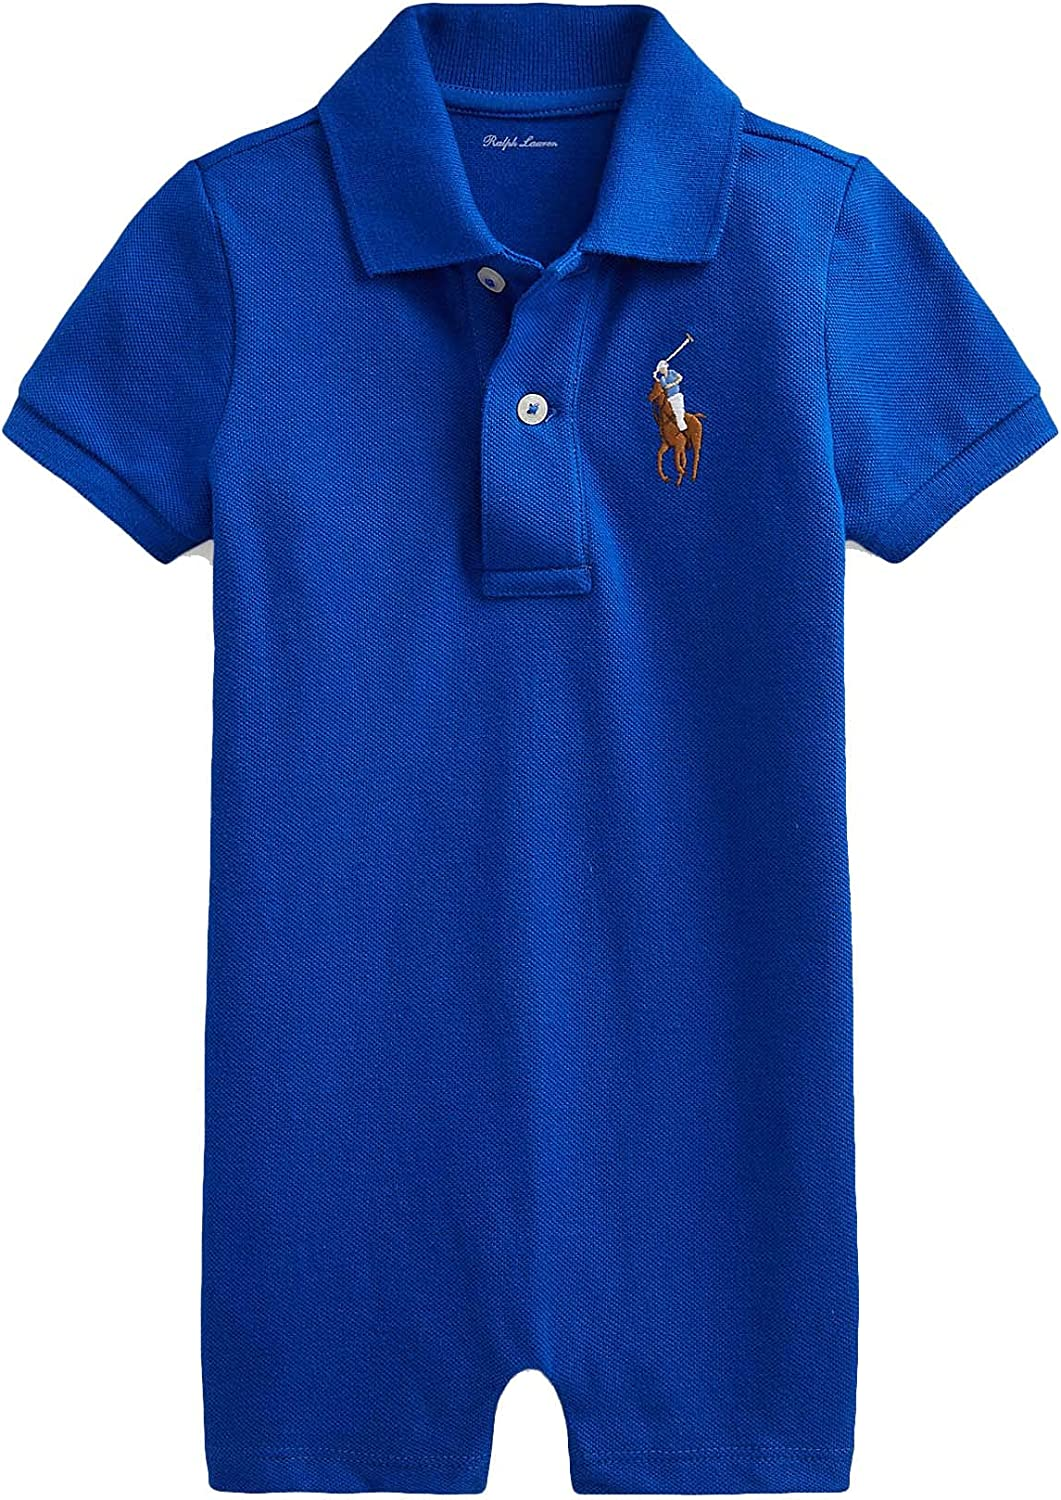 Polo Ralph Lauren Boys Classic Fit Mesh Polo Shirt : Clothing, Shoes & Jewelry